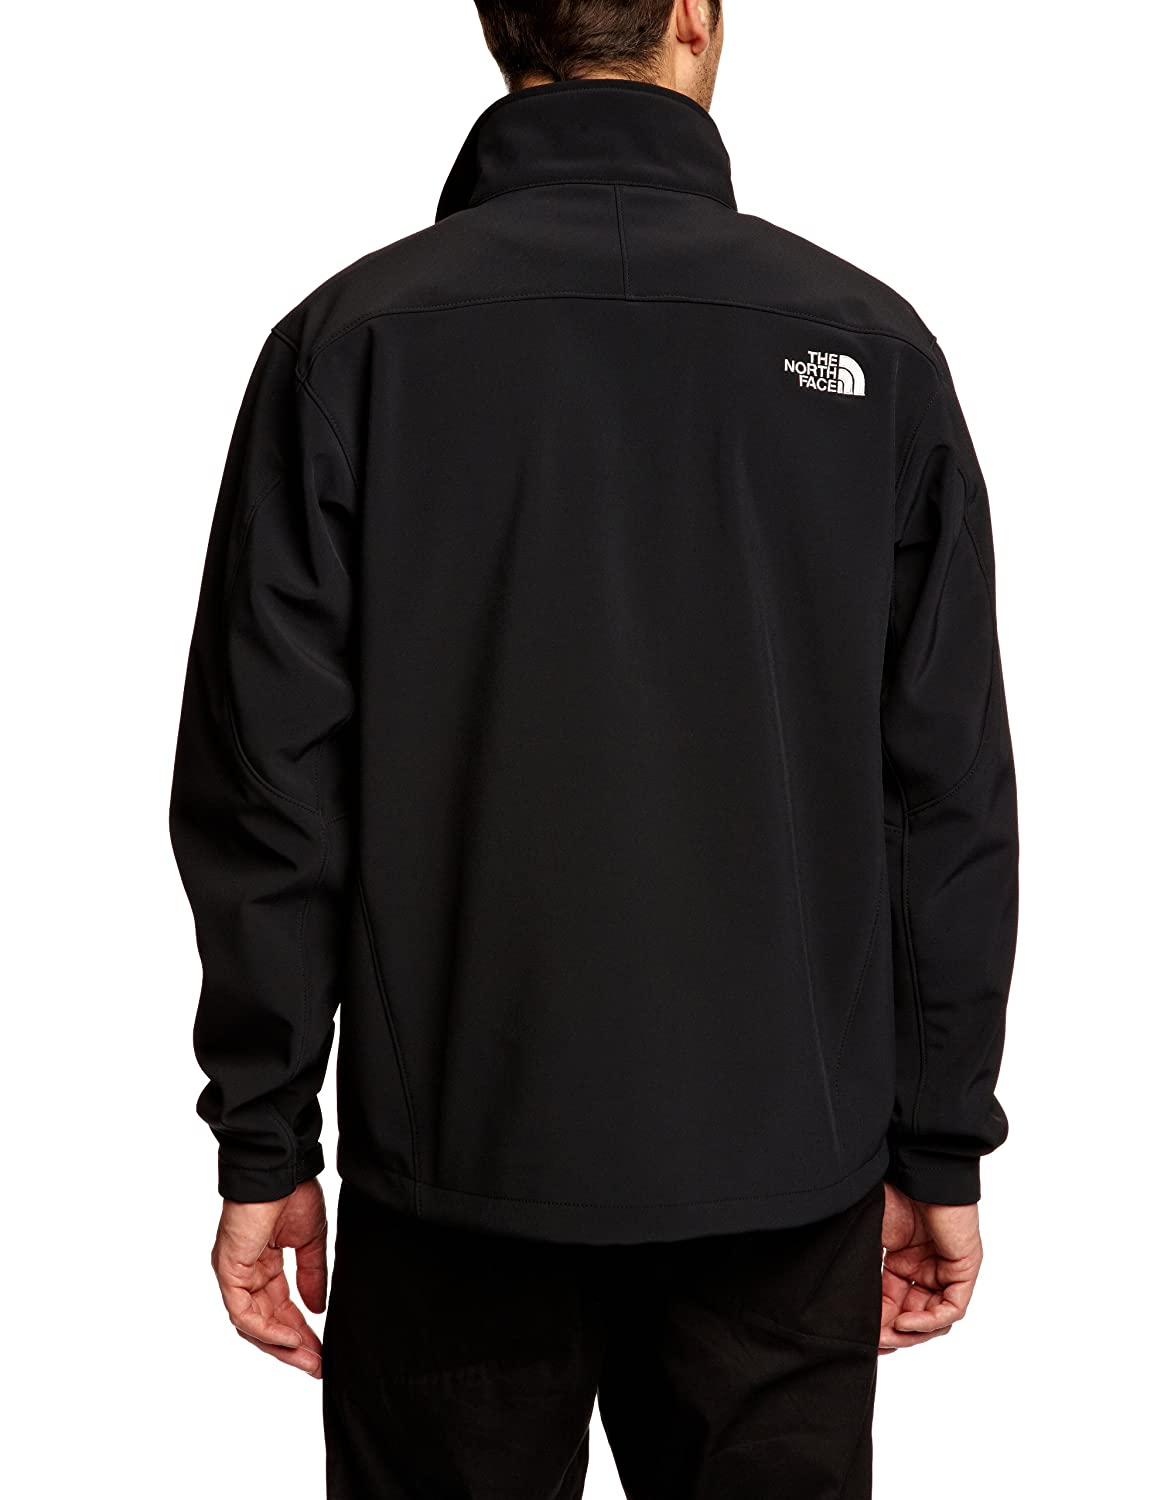 The North Face Apex - Chaqueta para hombre, color tnf negro: Amazon.es: Deportes y aire libre